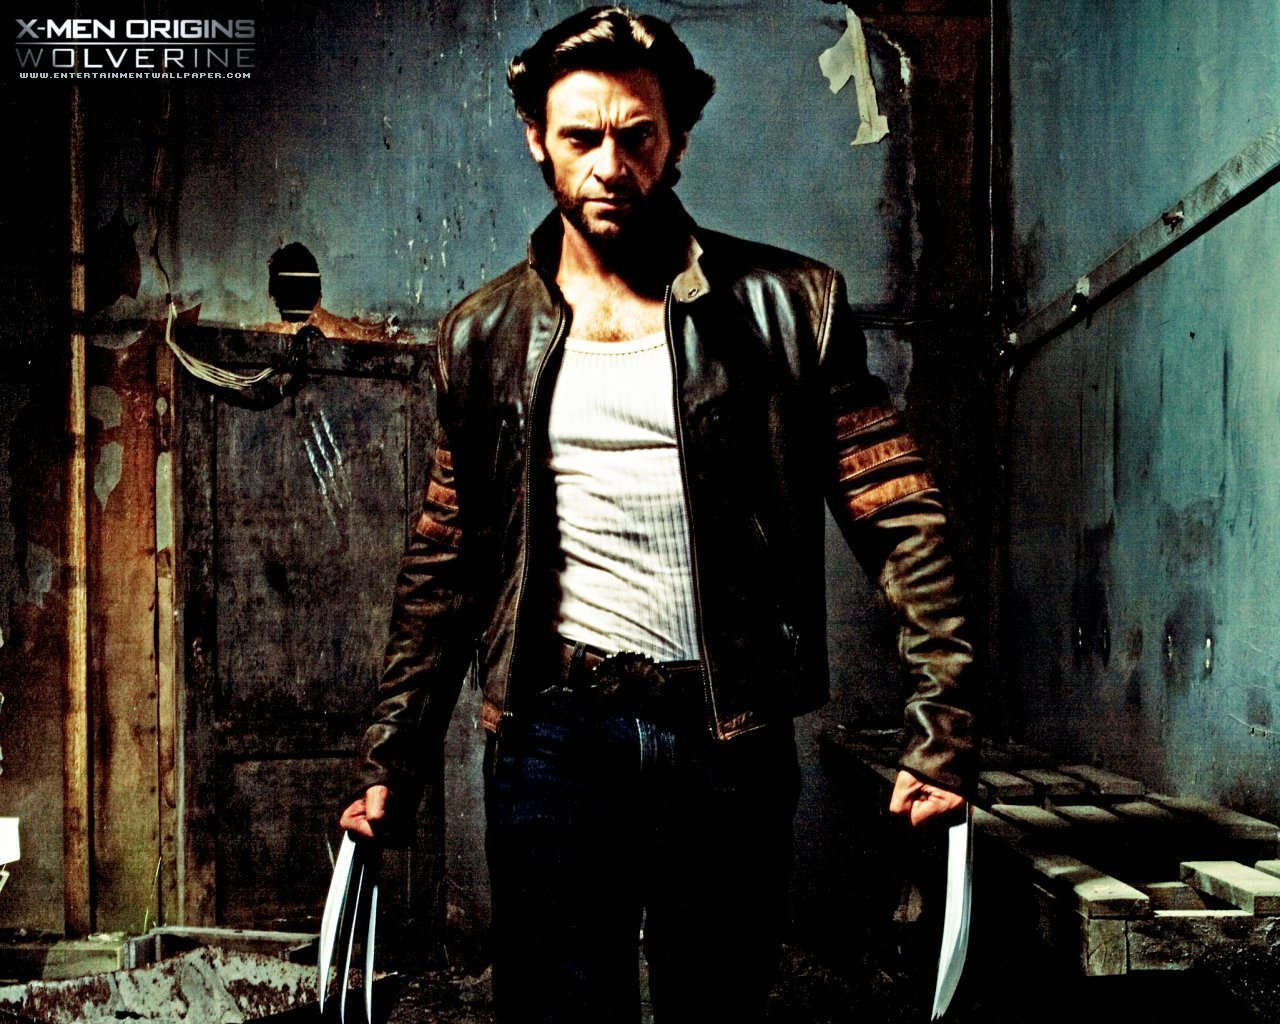 Men Origins Wolverine Wallpaper   Upcoming Movies Wallpaper 1280x1024